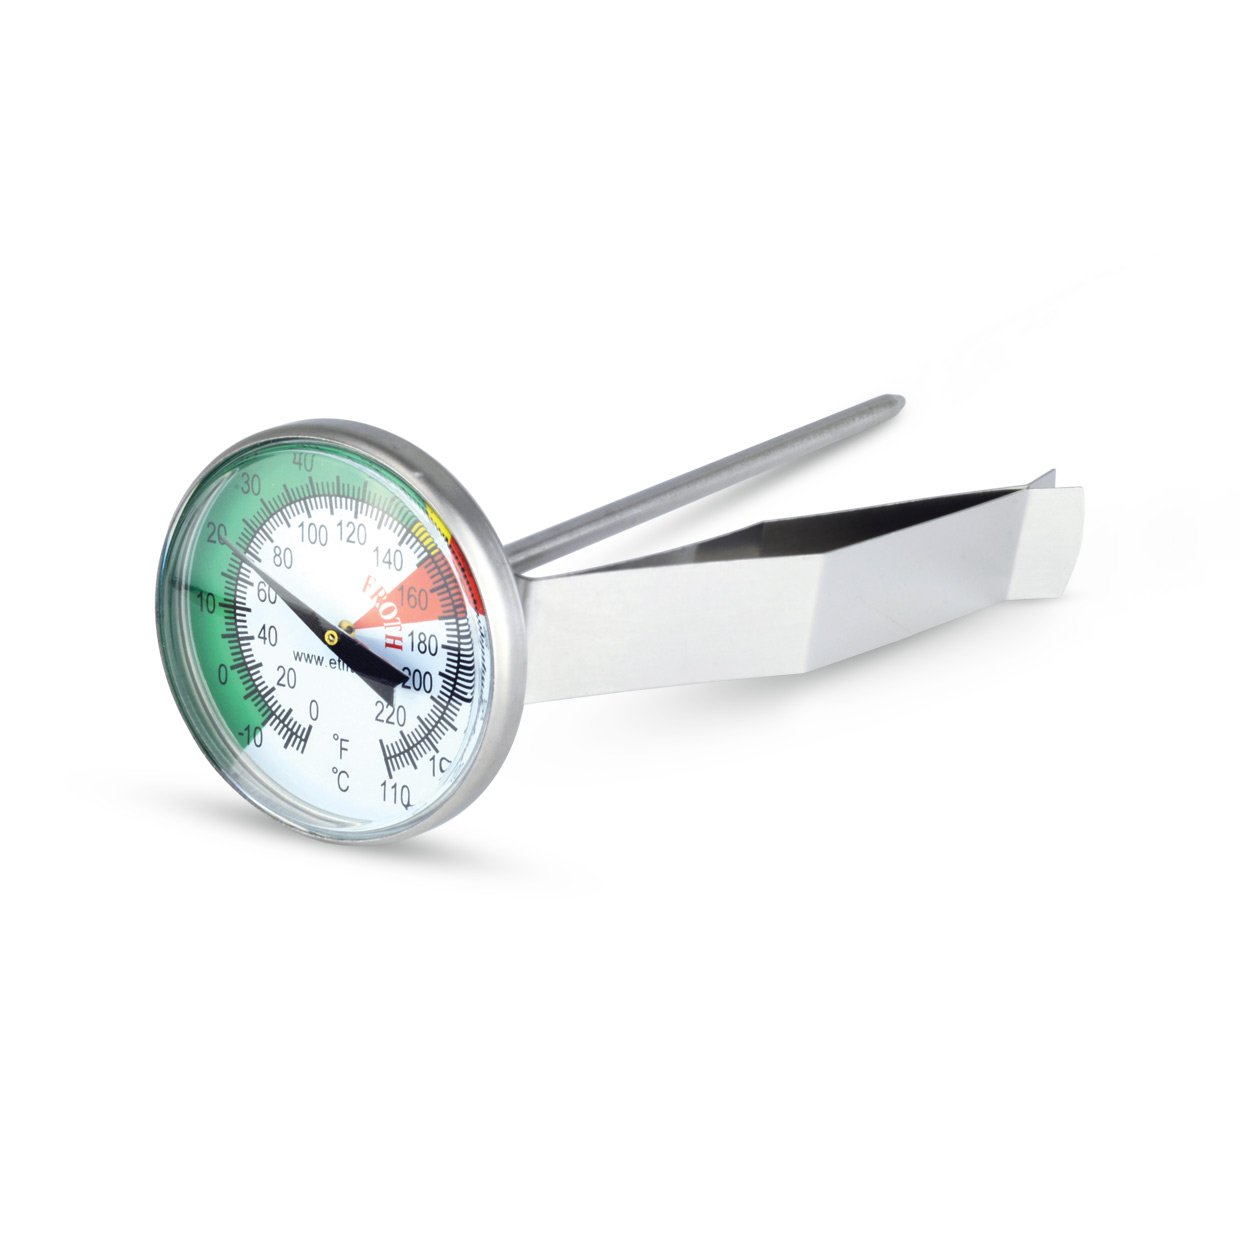 Milk frothing/coffee thermometer - barista thermometer - 45mm dial ETI Ltd